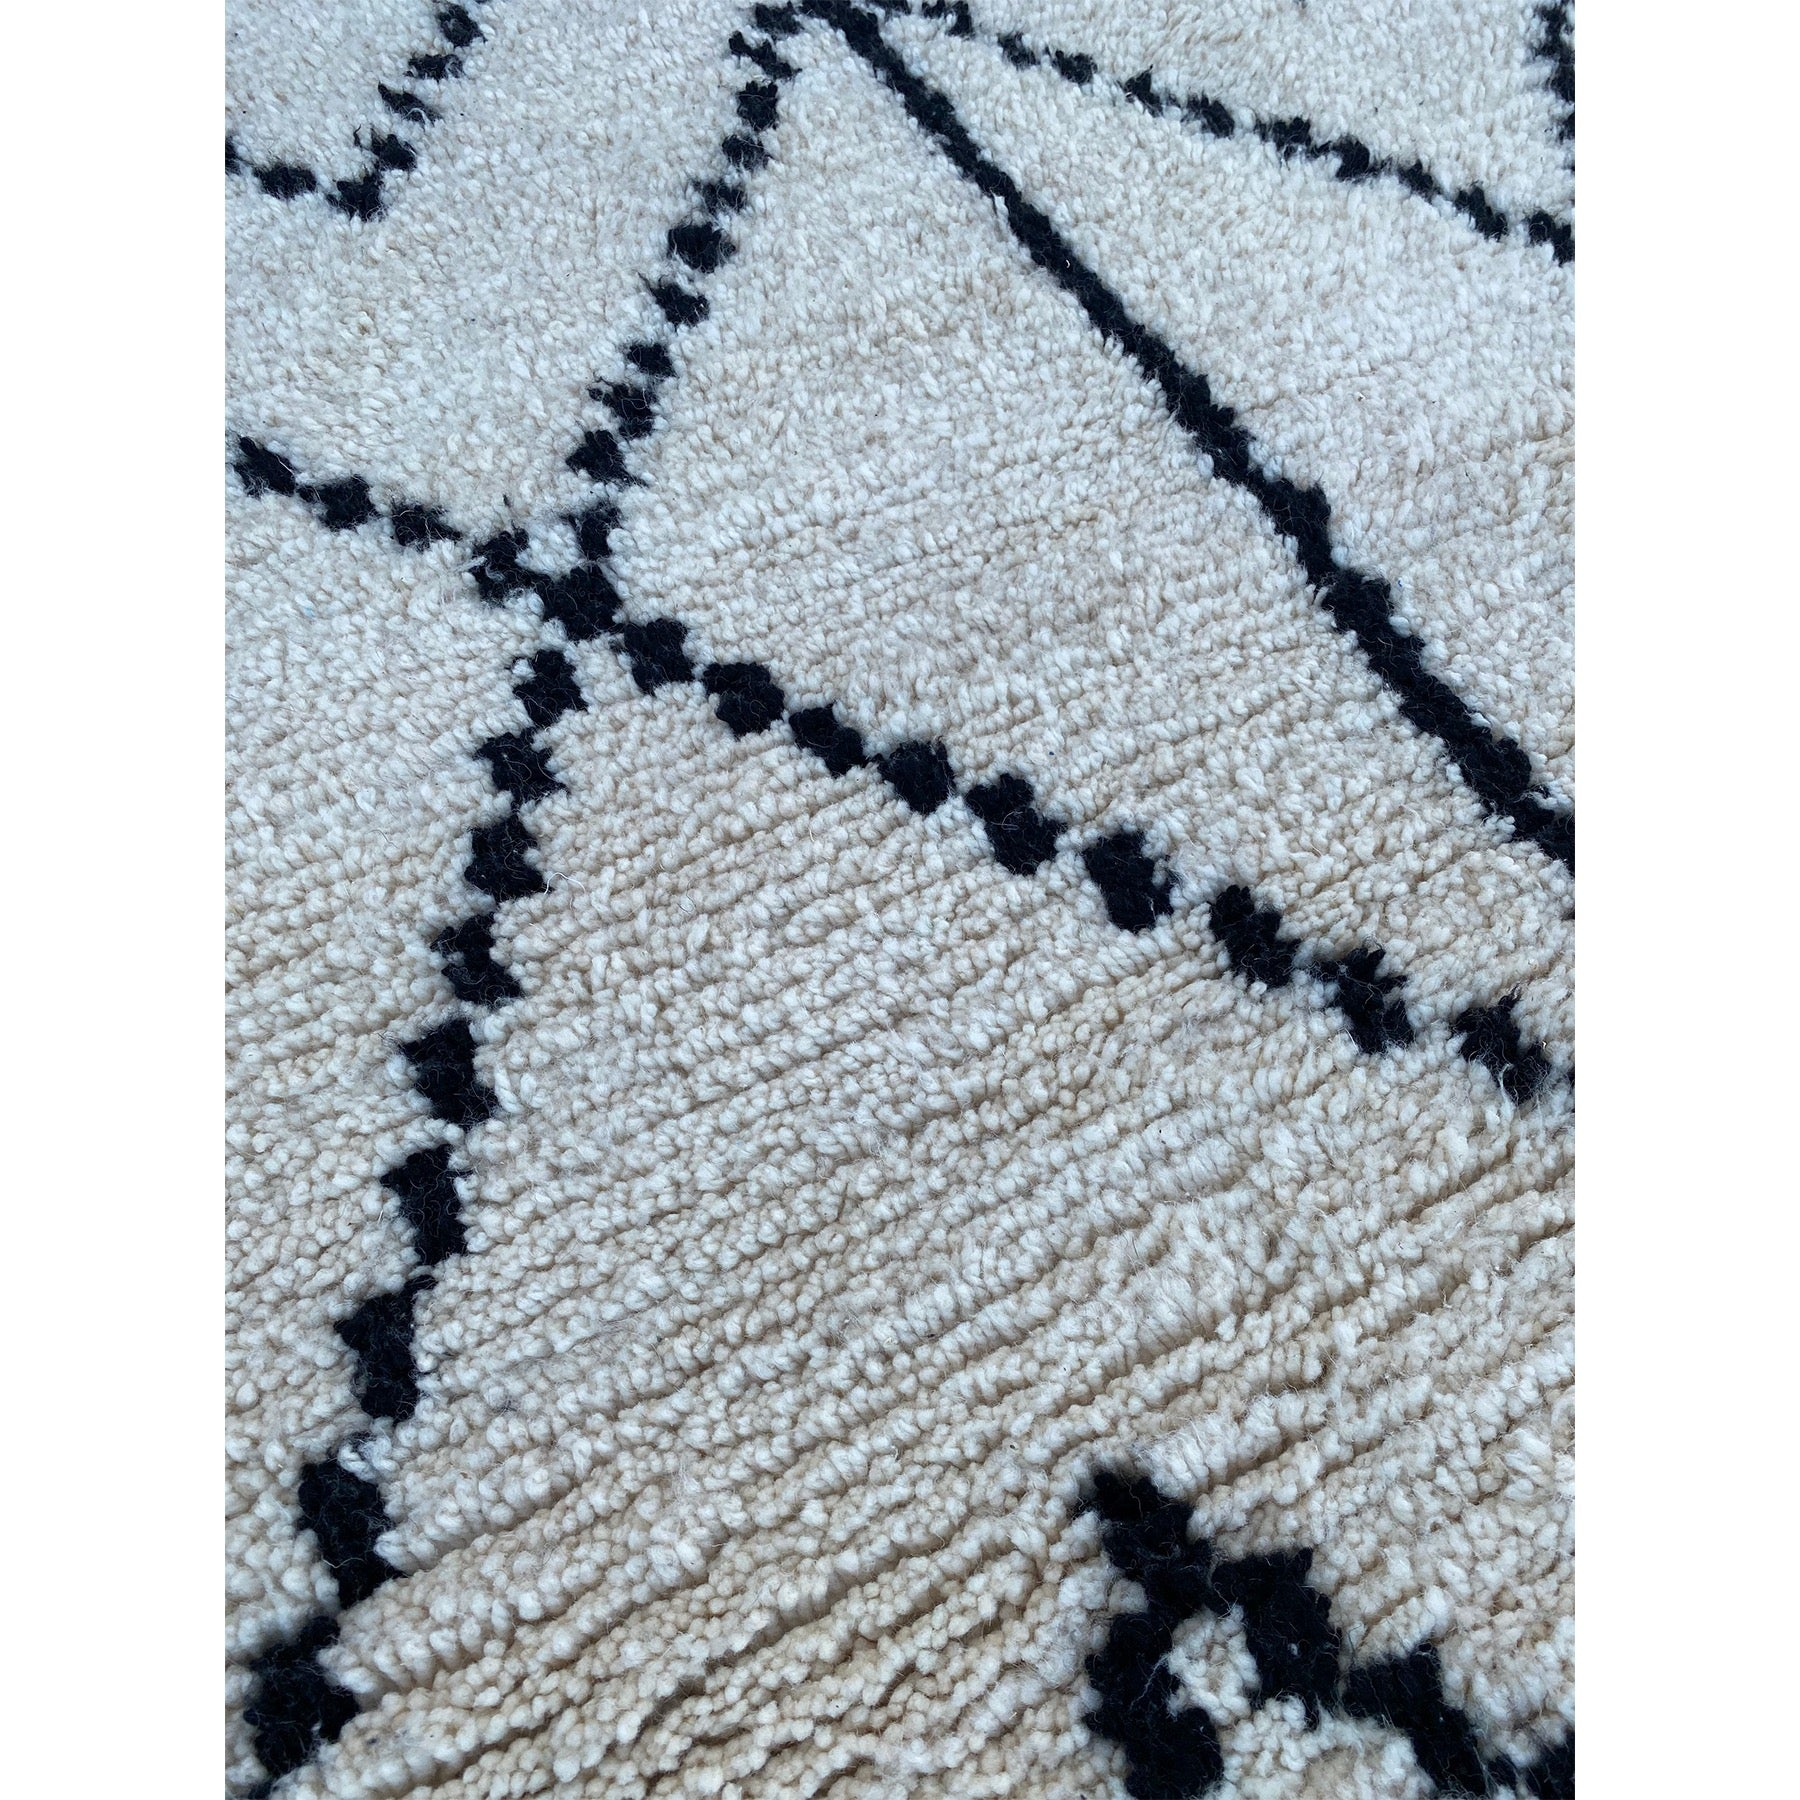 White and black geometric Beni Ourain inspired Moroccan rug - Kantara | Moroccan Rugs